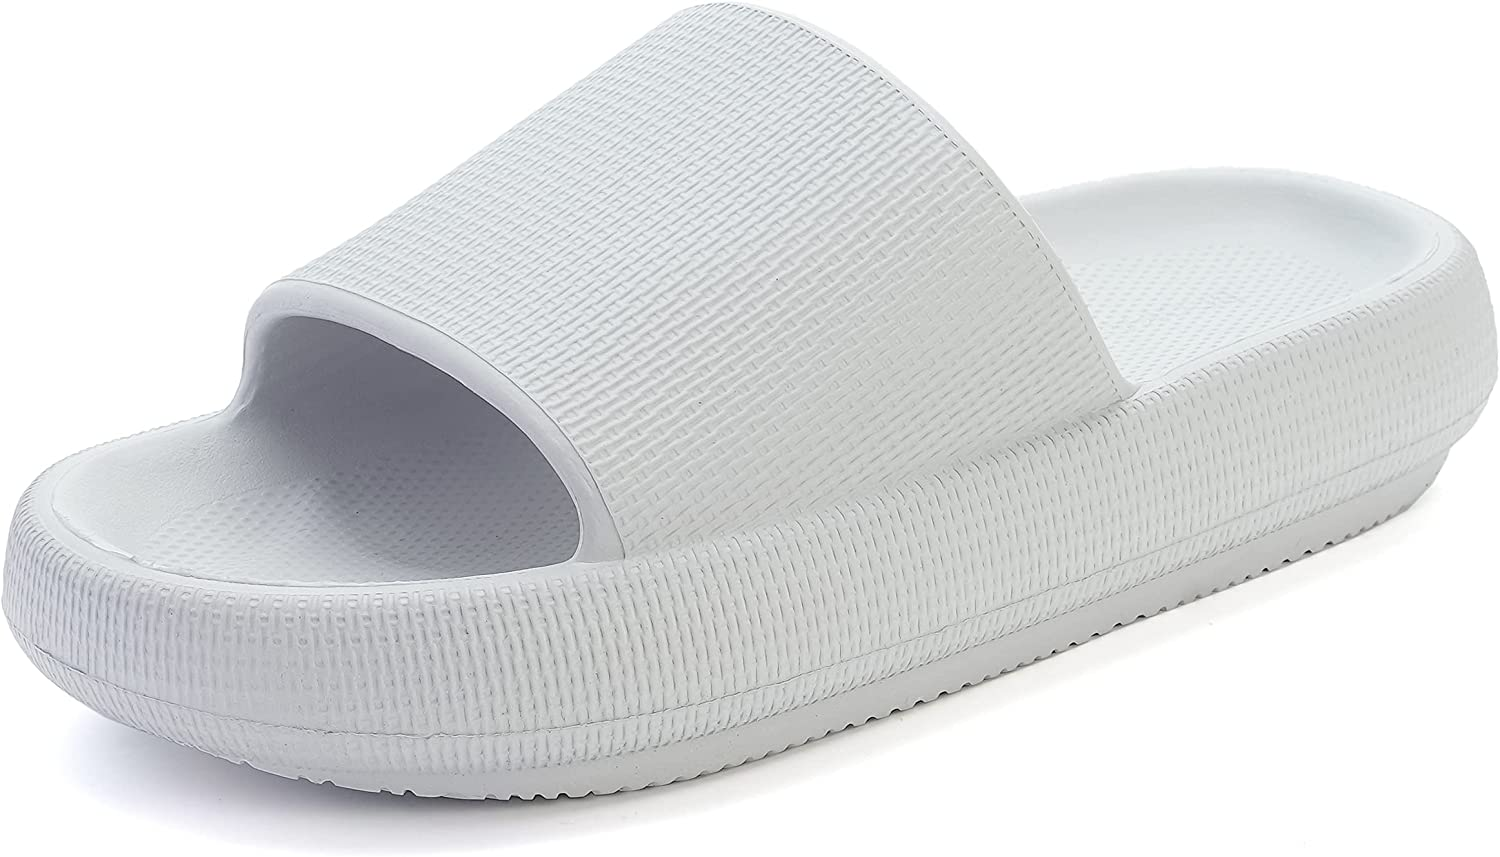 BRONAX Pillow Slippers for Women and Men | Shower Bathroom Sandals | Extremely Comfy | Non-Slip & Cushioned Thick Sole